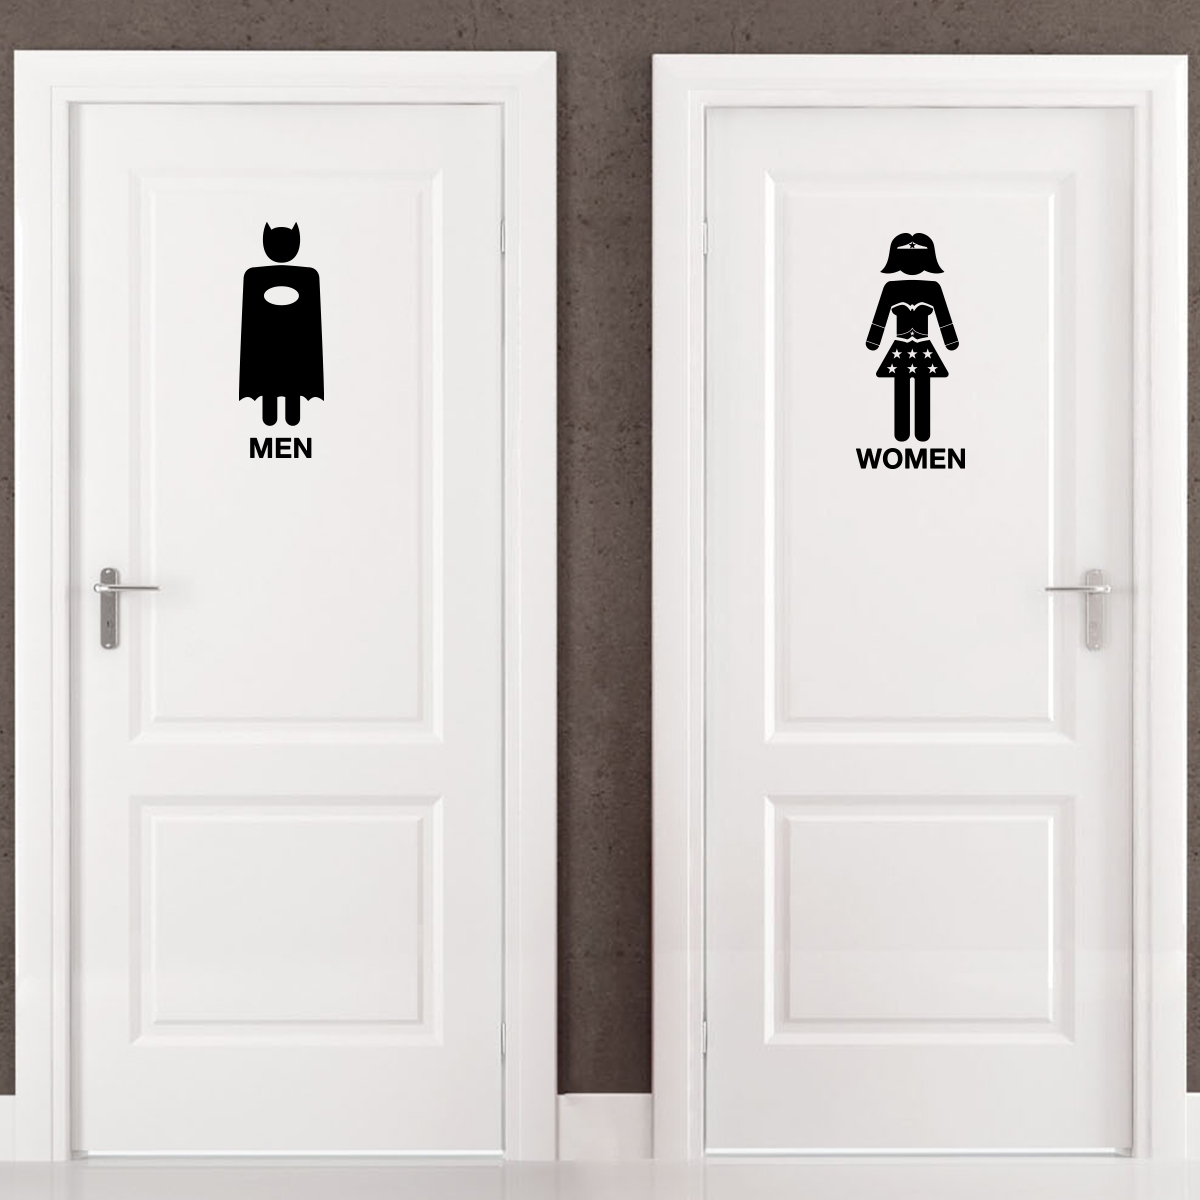 sticker porte toilettes super h ros stickers toilettes. Black Bedroom Furniture Sets. Home Design Ideas